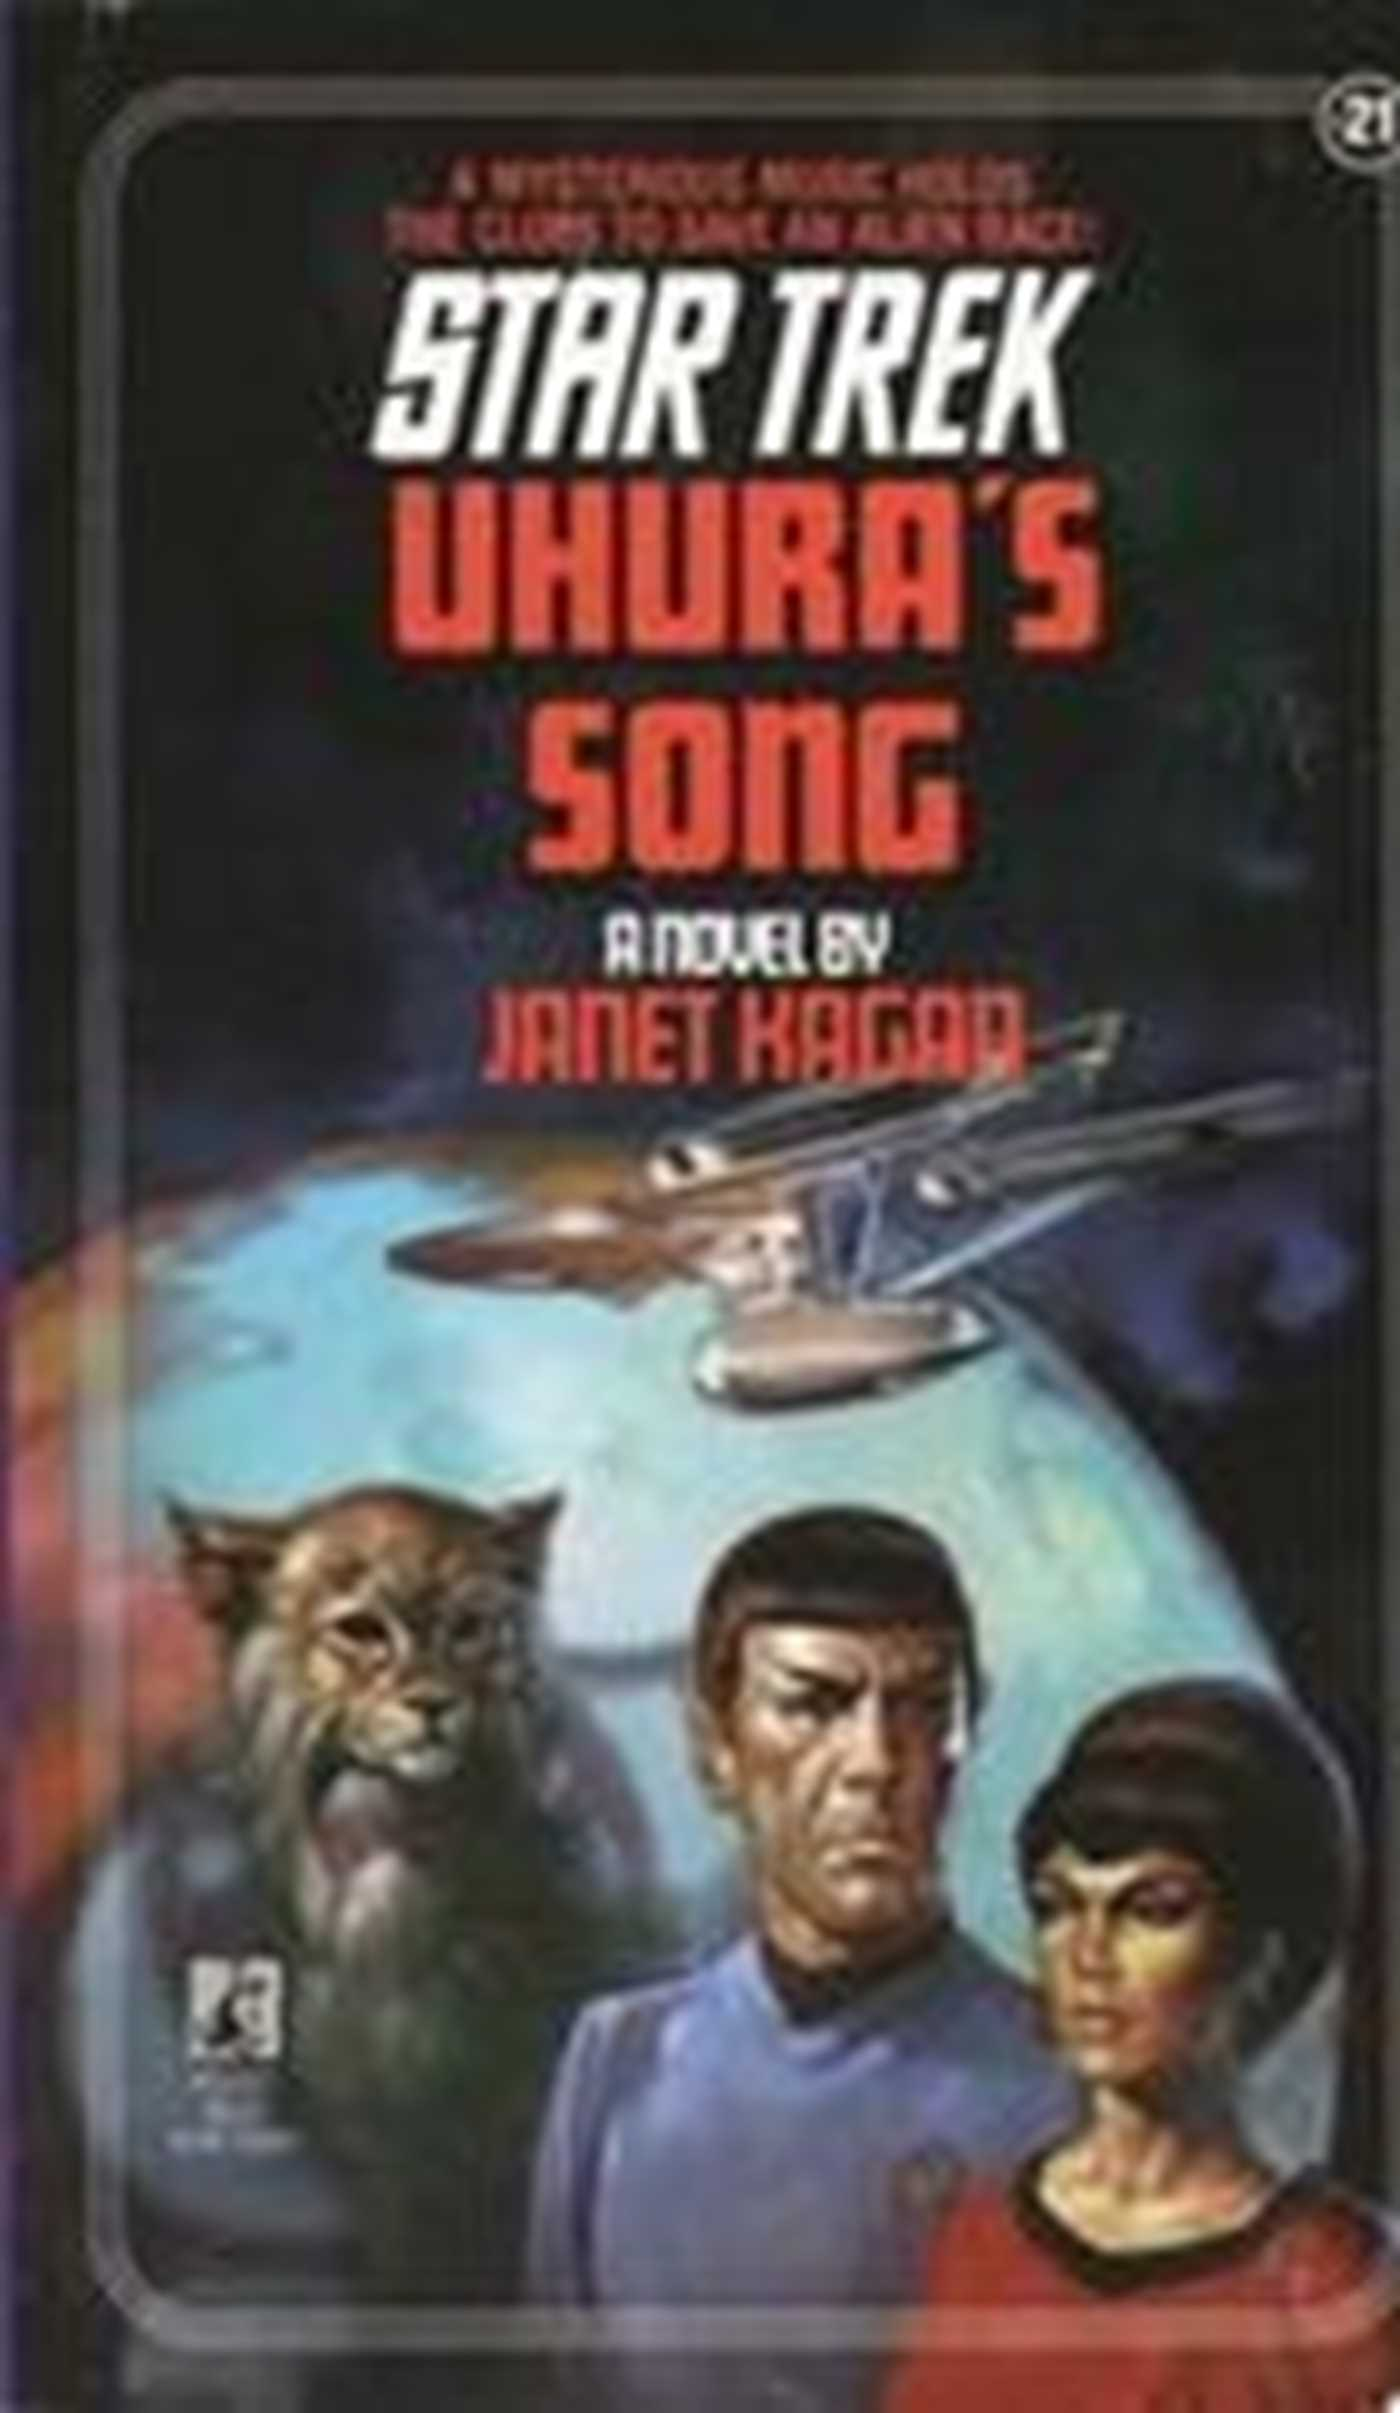 Uhuras-song-9780743419727_hr